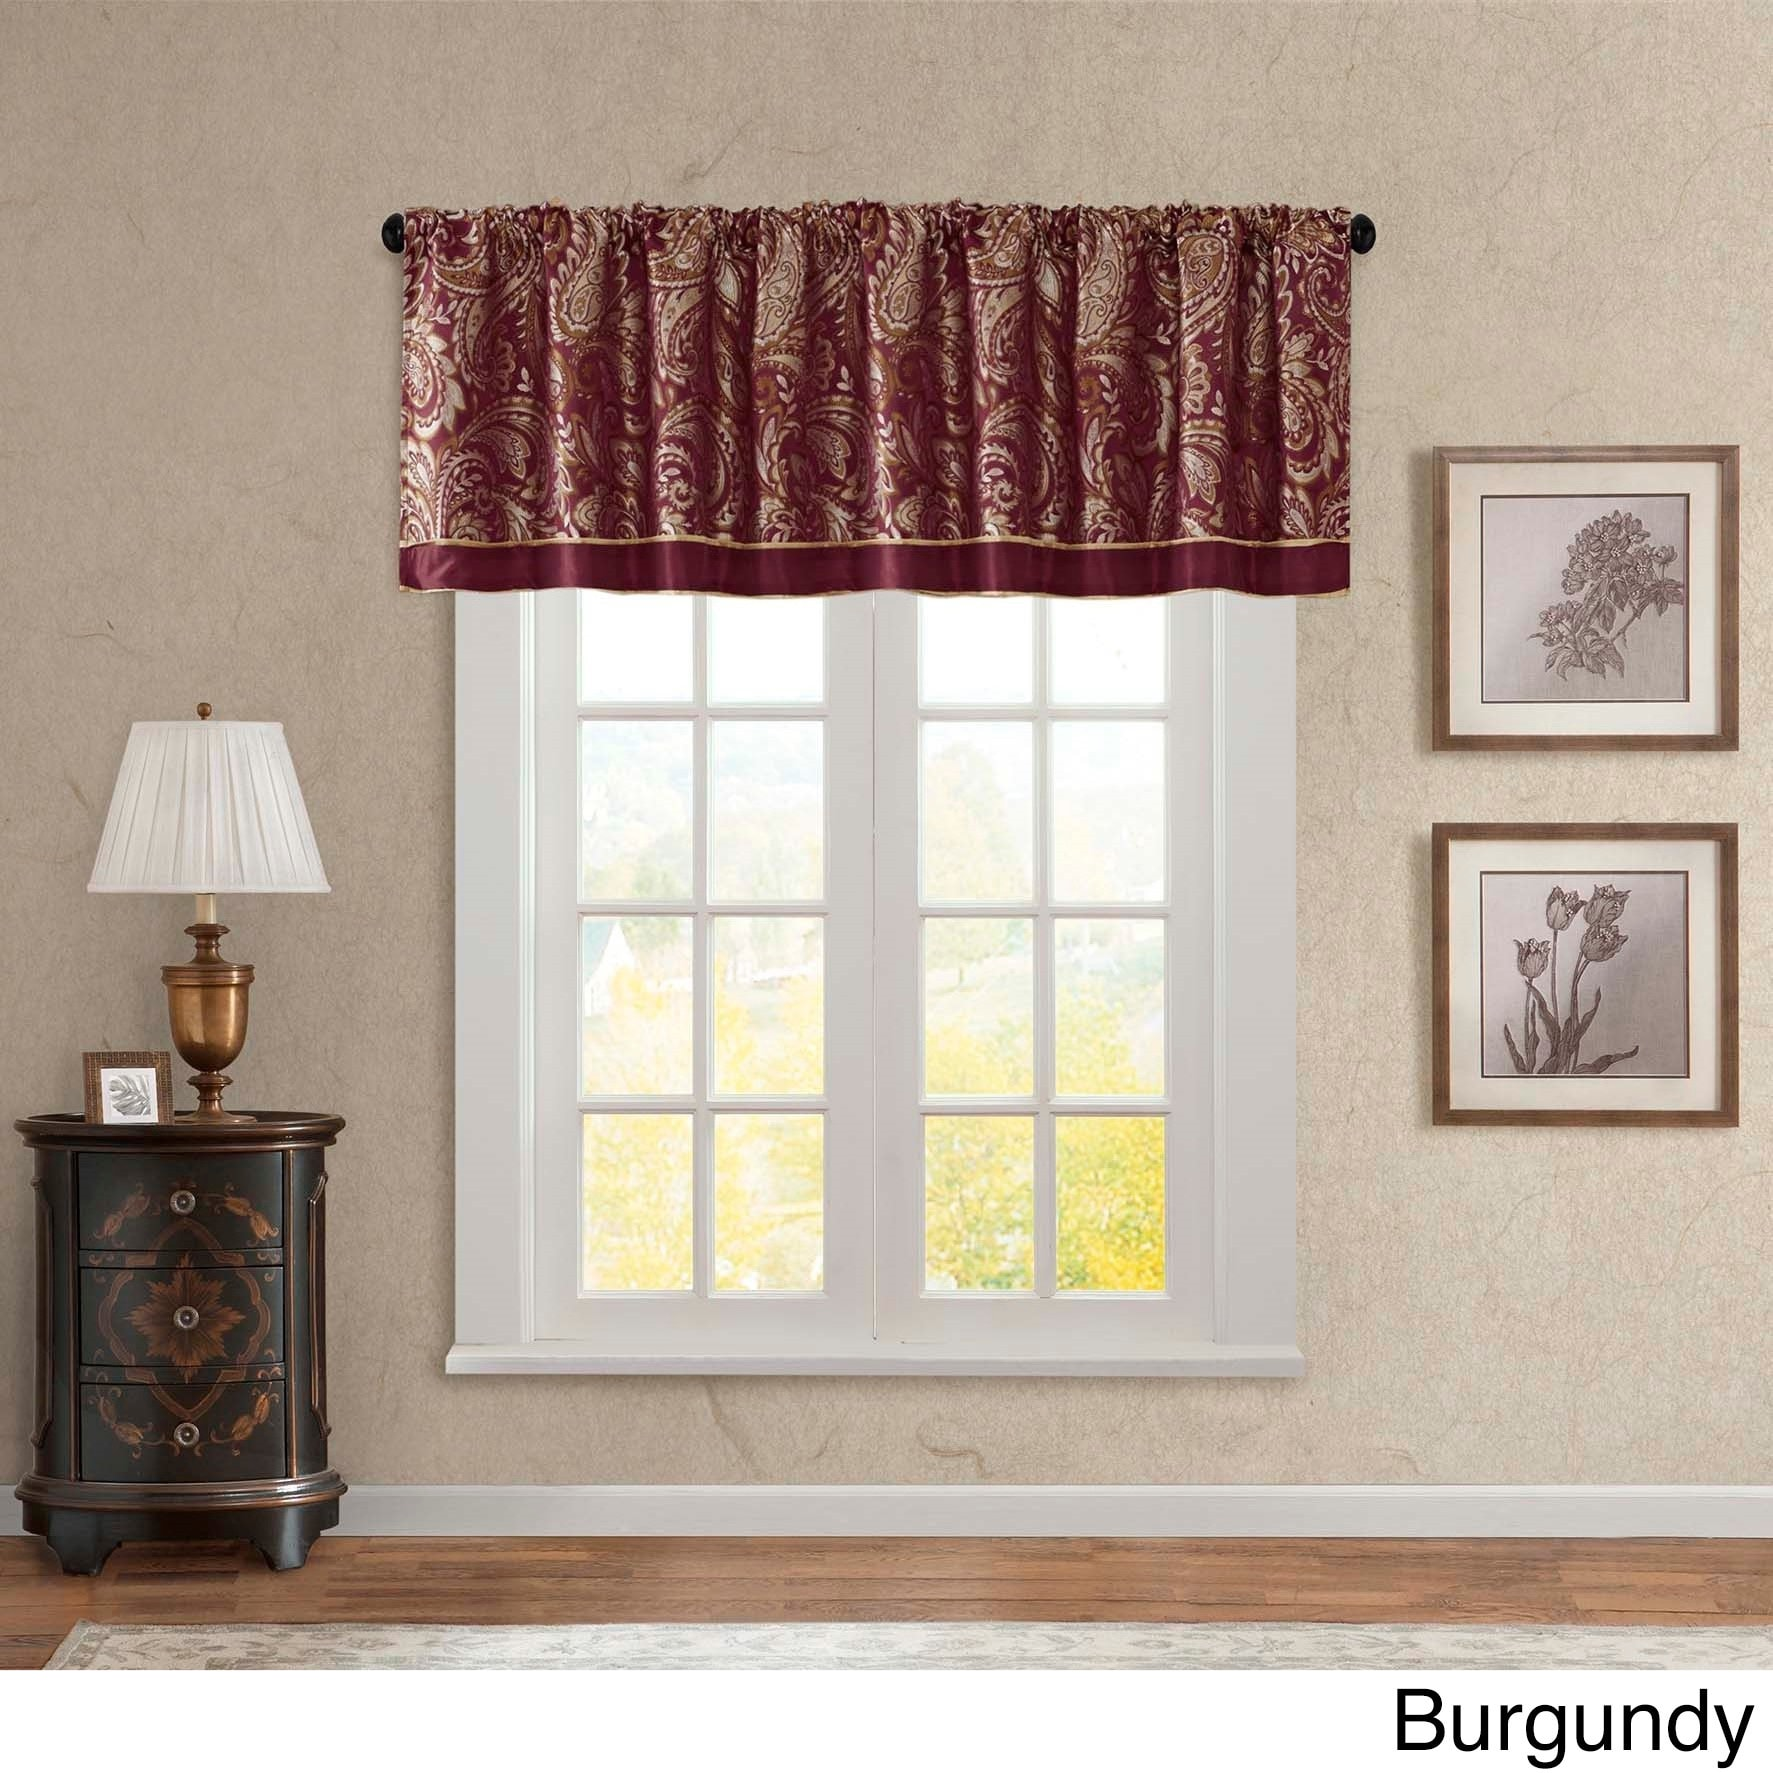 products and macrame valerie straight burgundy swags kitchen valances sheer tiers valance zoom